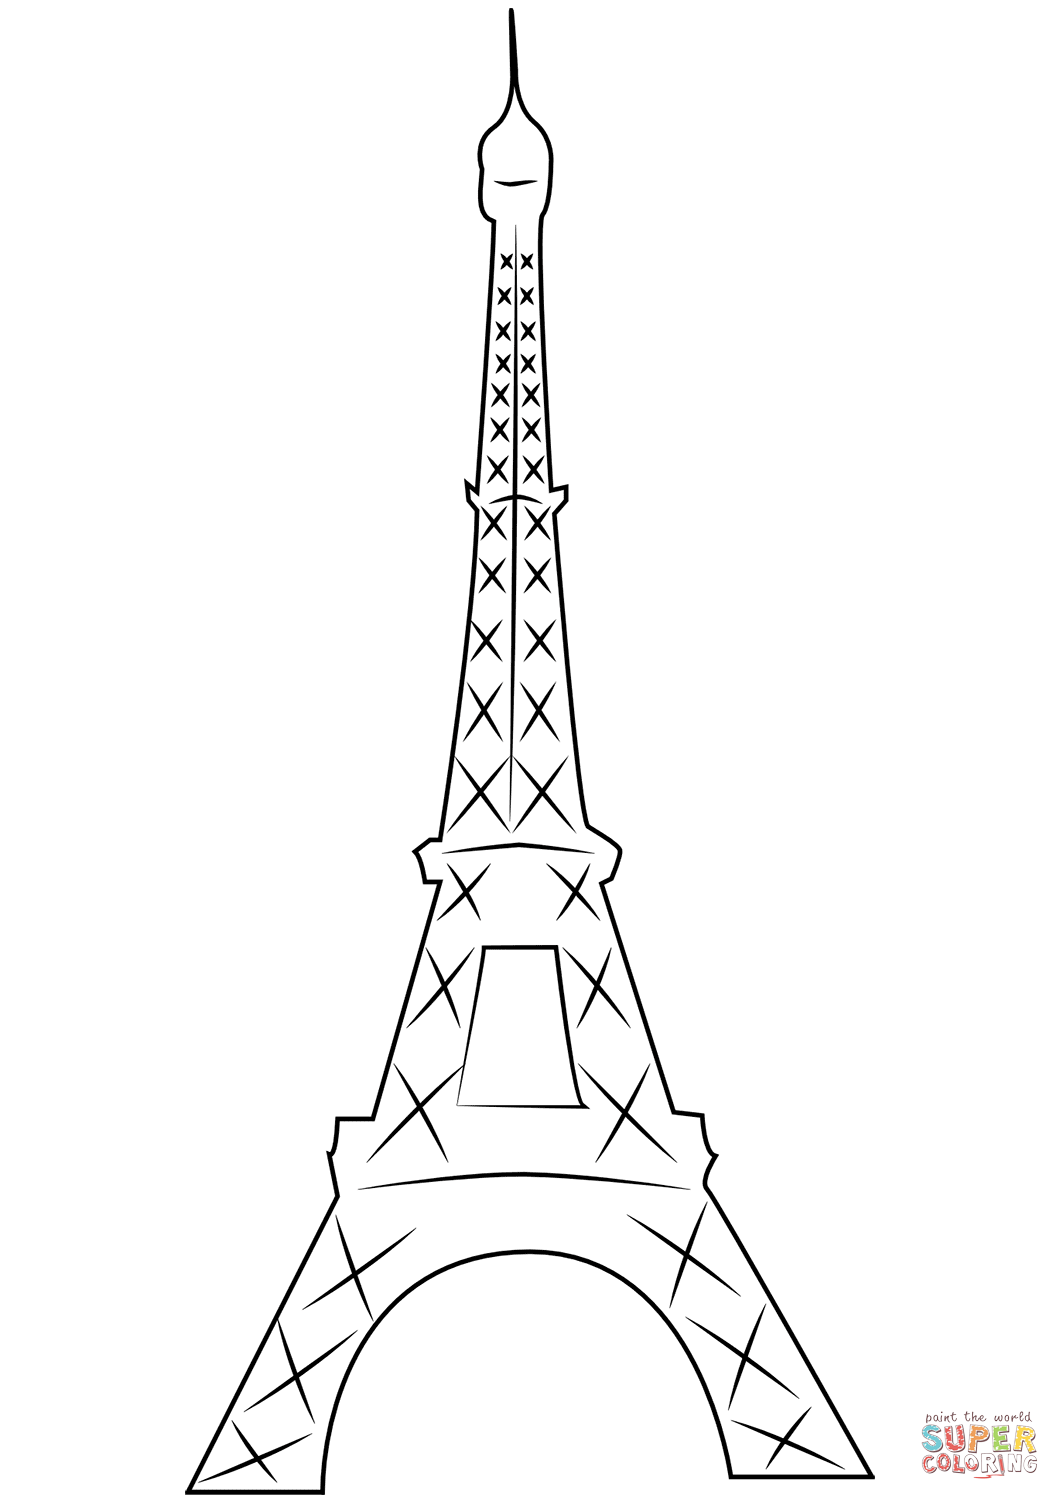 1060x1500 Trend Eiffel Tower Coloring Page To Download And Print Pages